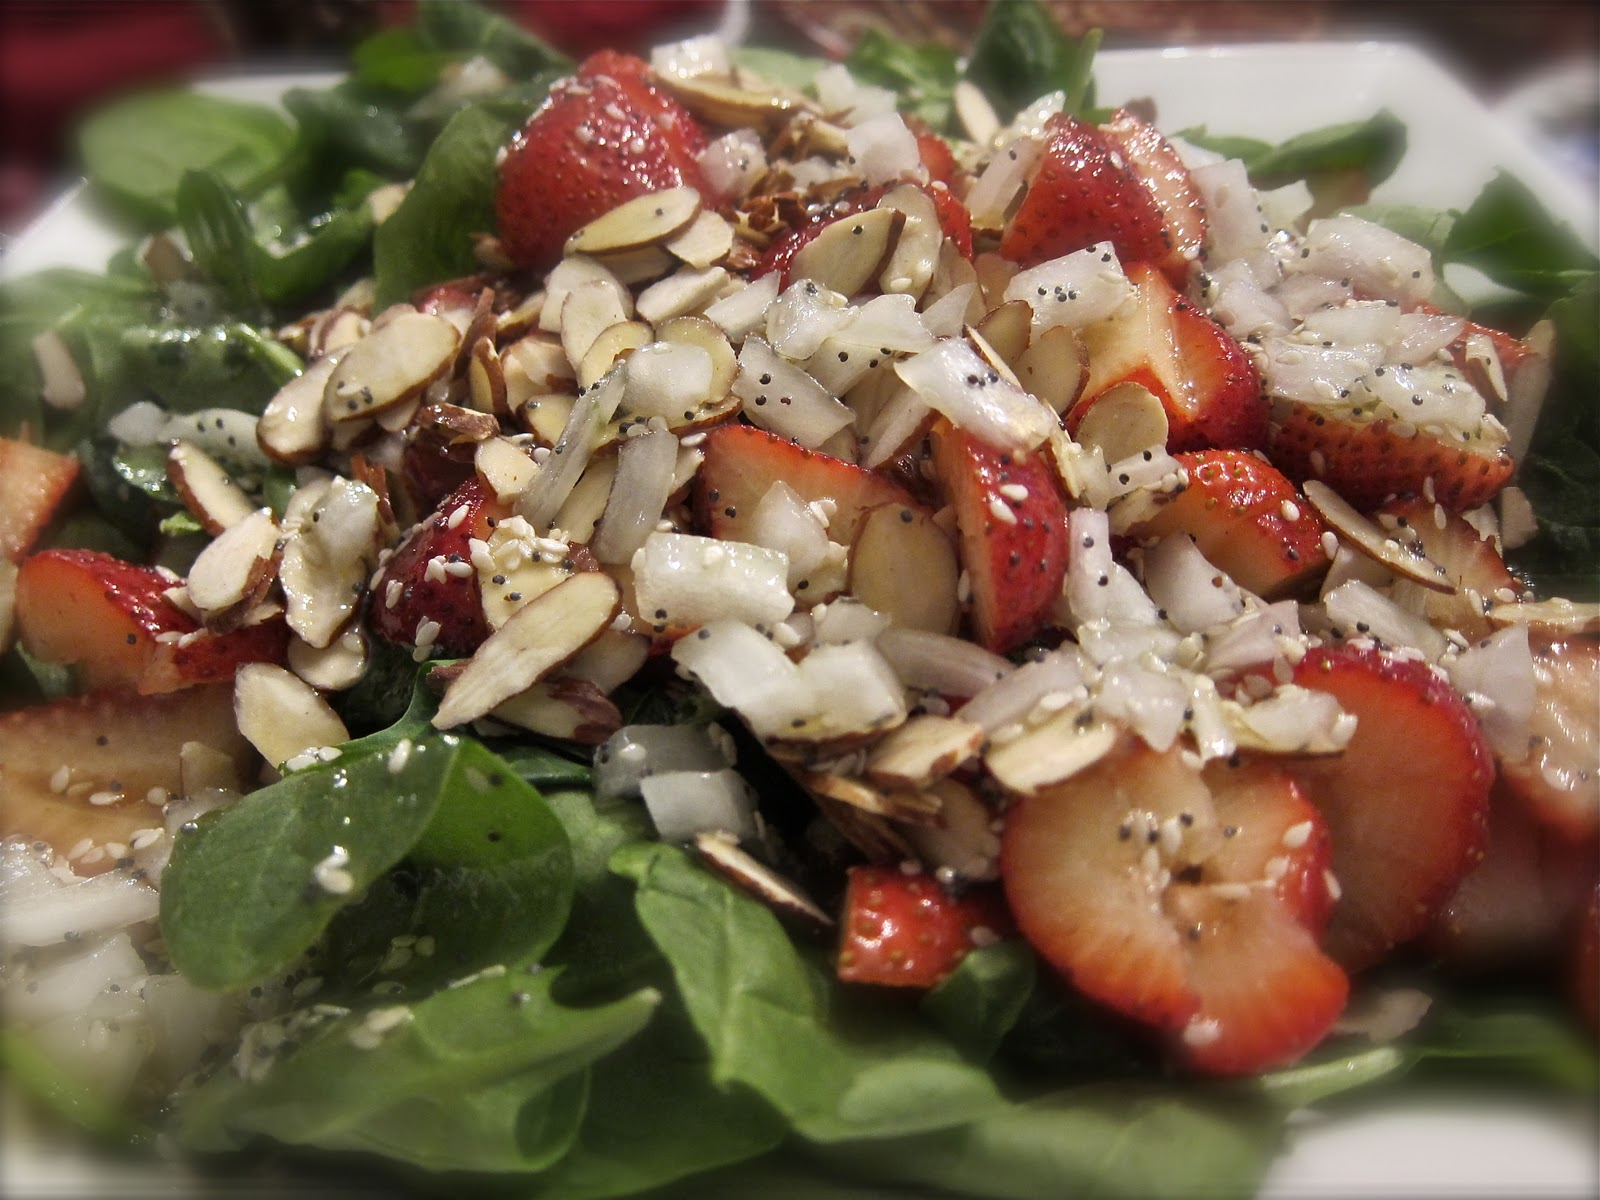 ... eating healthier – a beautiful Strawberry Spinach Salad! She writes